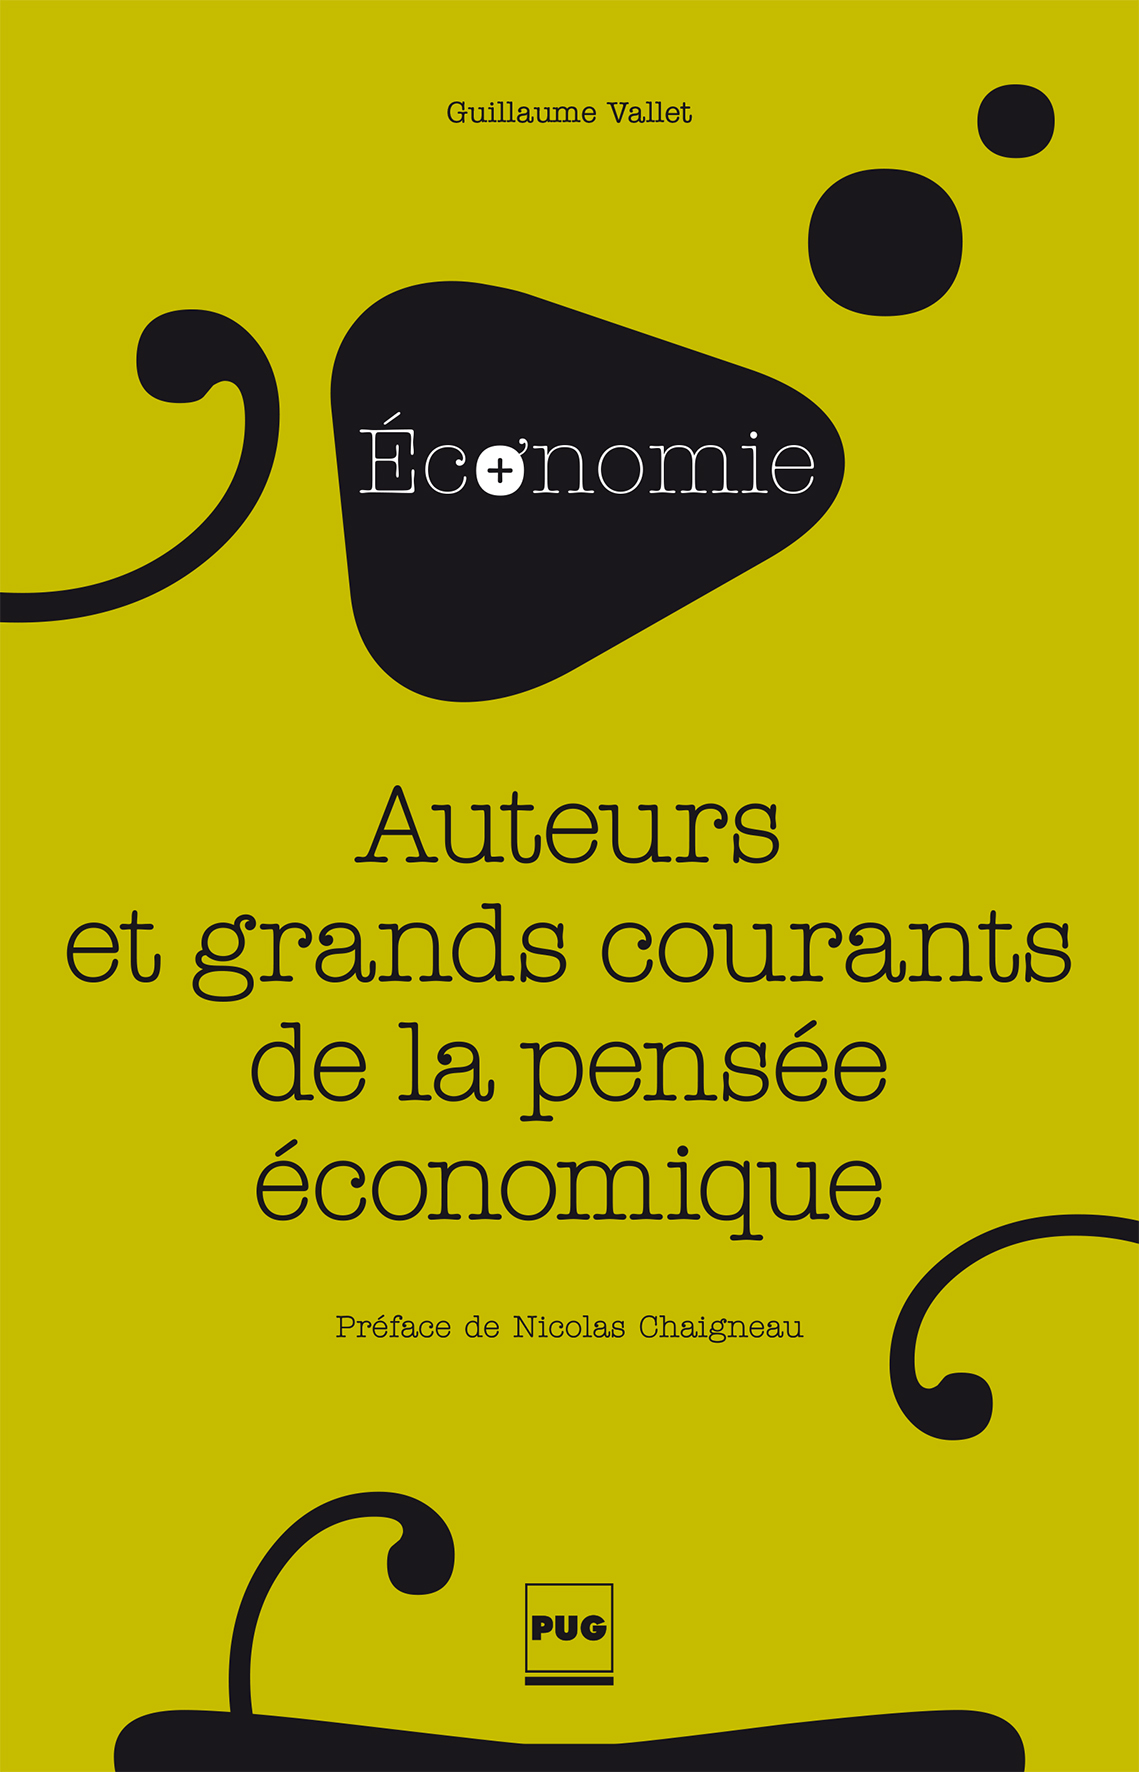 auteurs et grands courants de la pens u00e9e  u00e9conomique